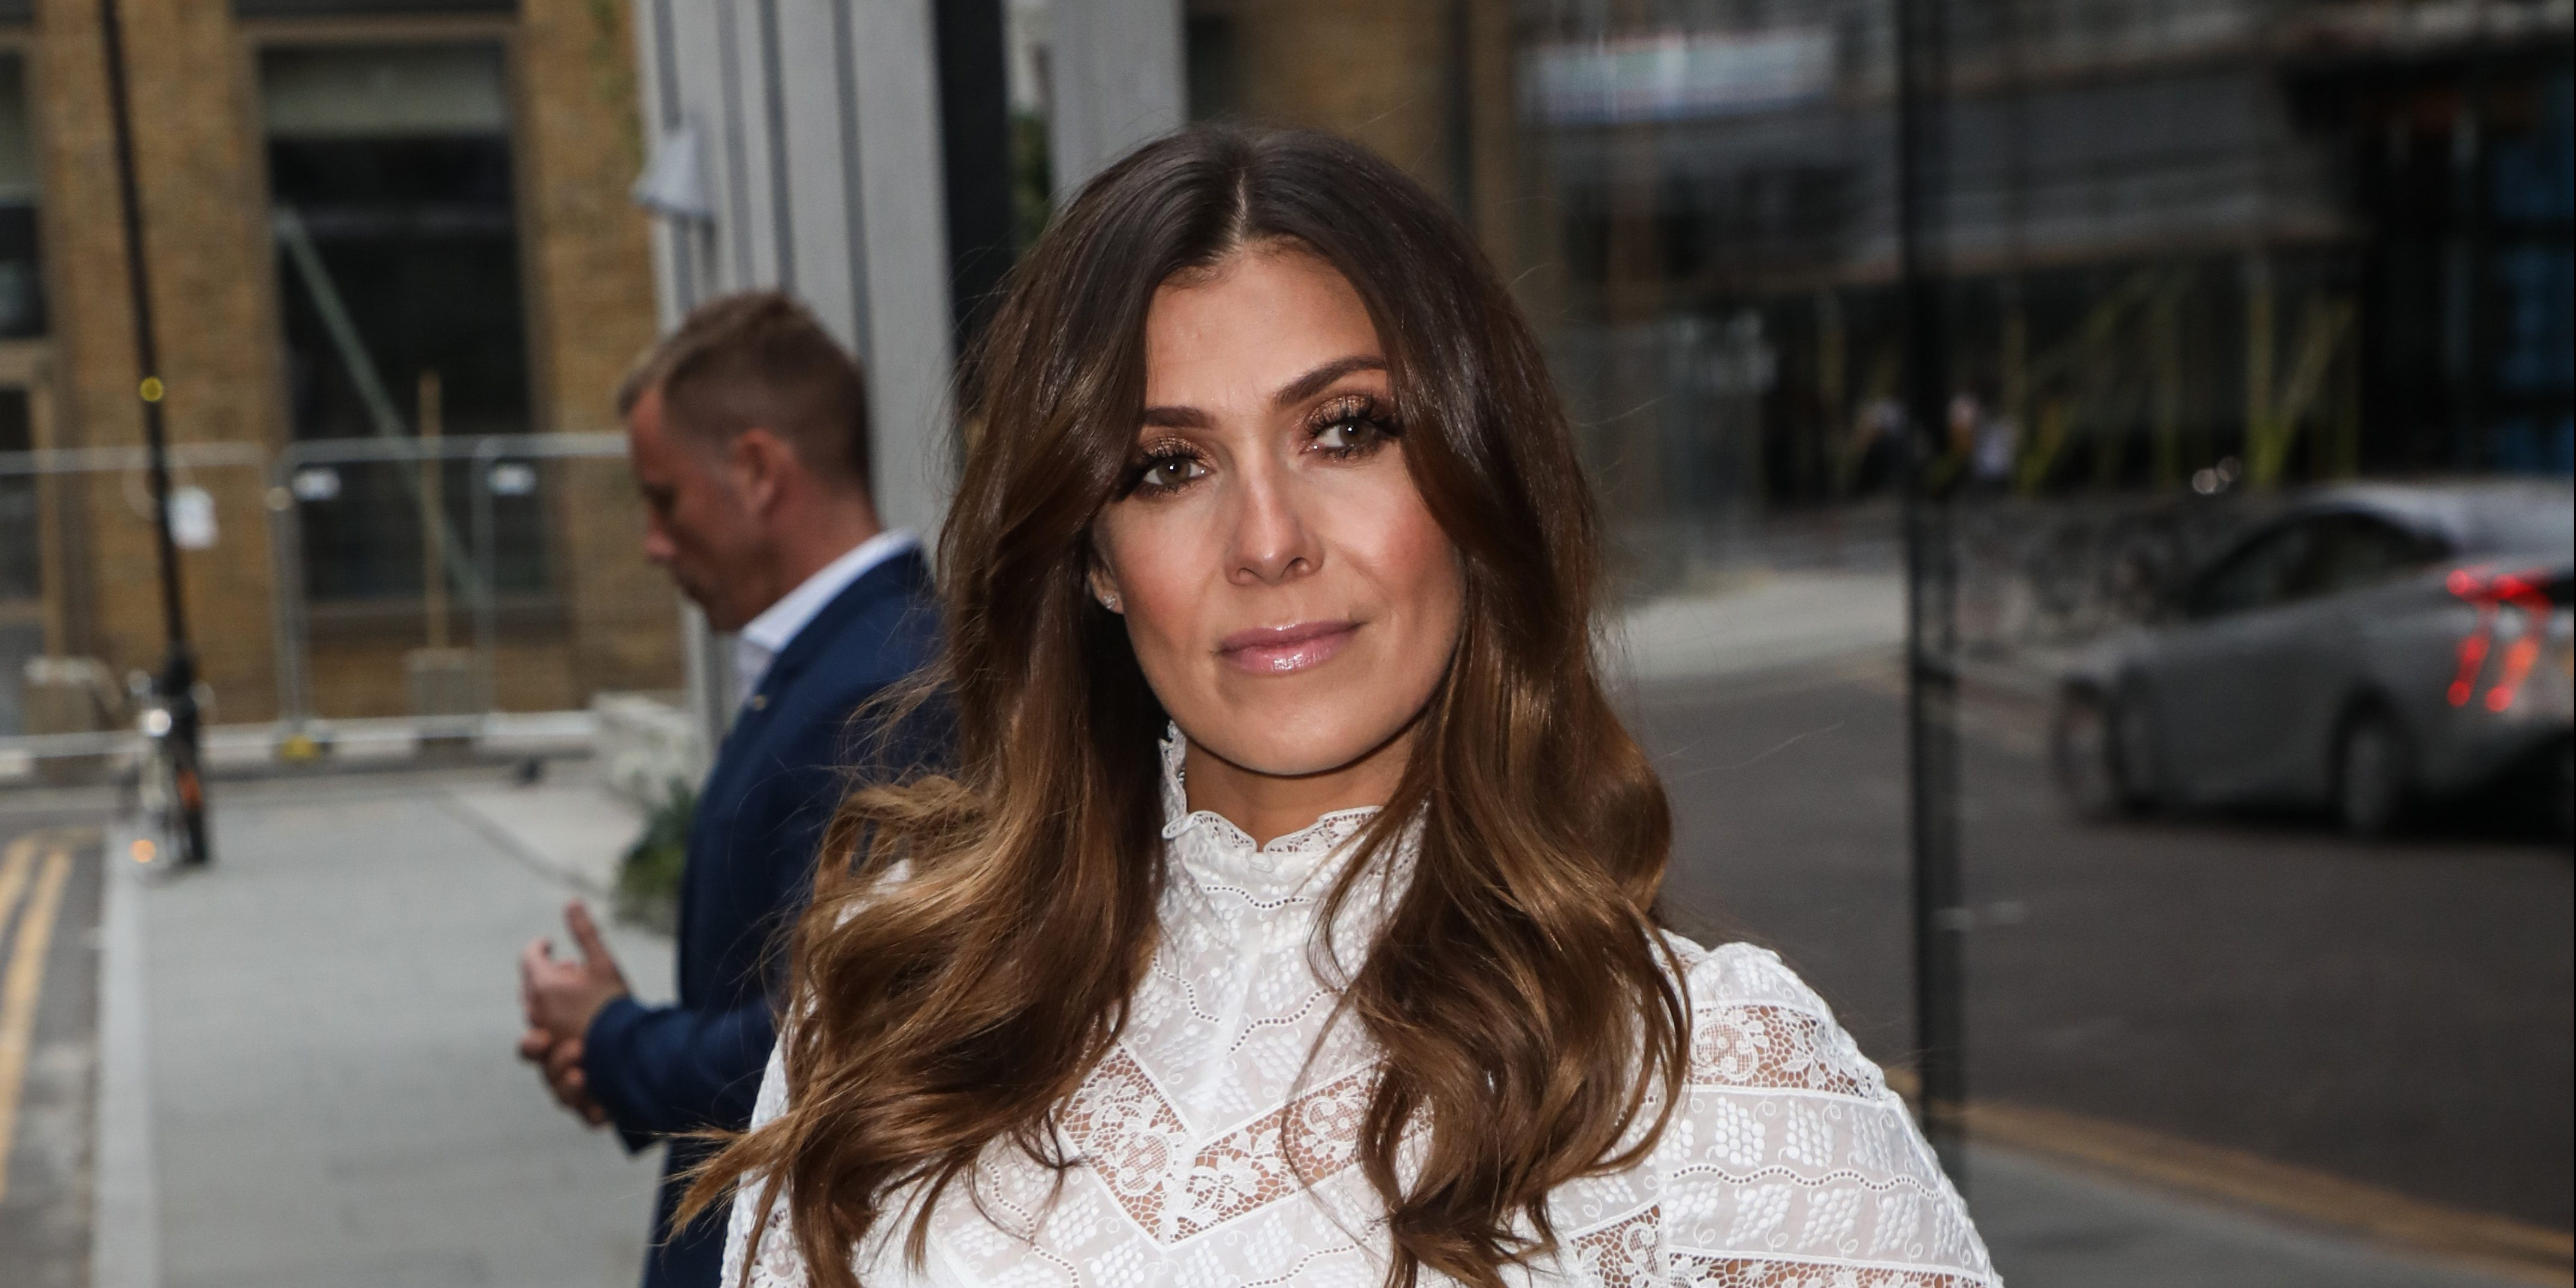 Coronation Street's Kym Marsh shares adorable pictures of daughter Polly and grandson Teddy